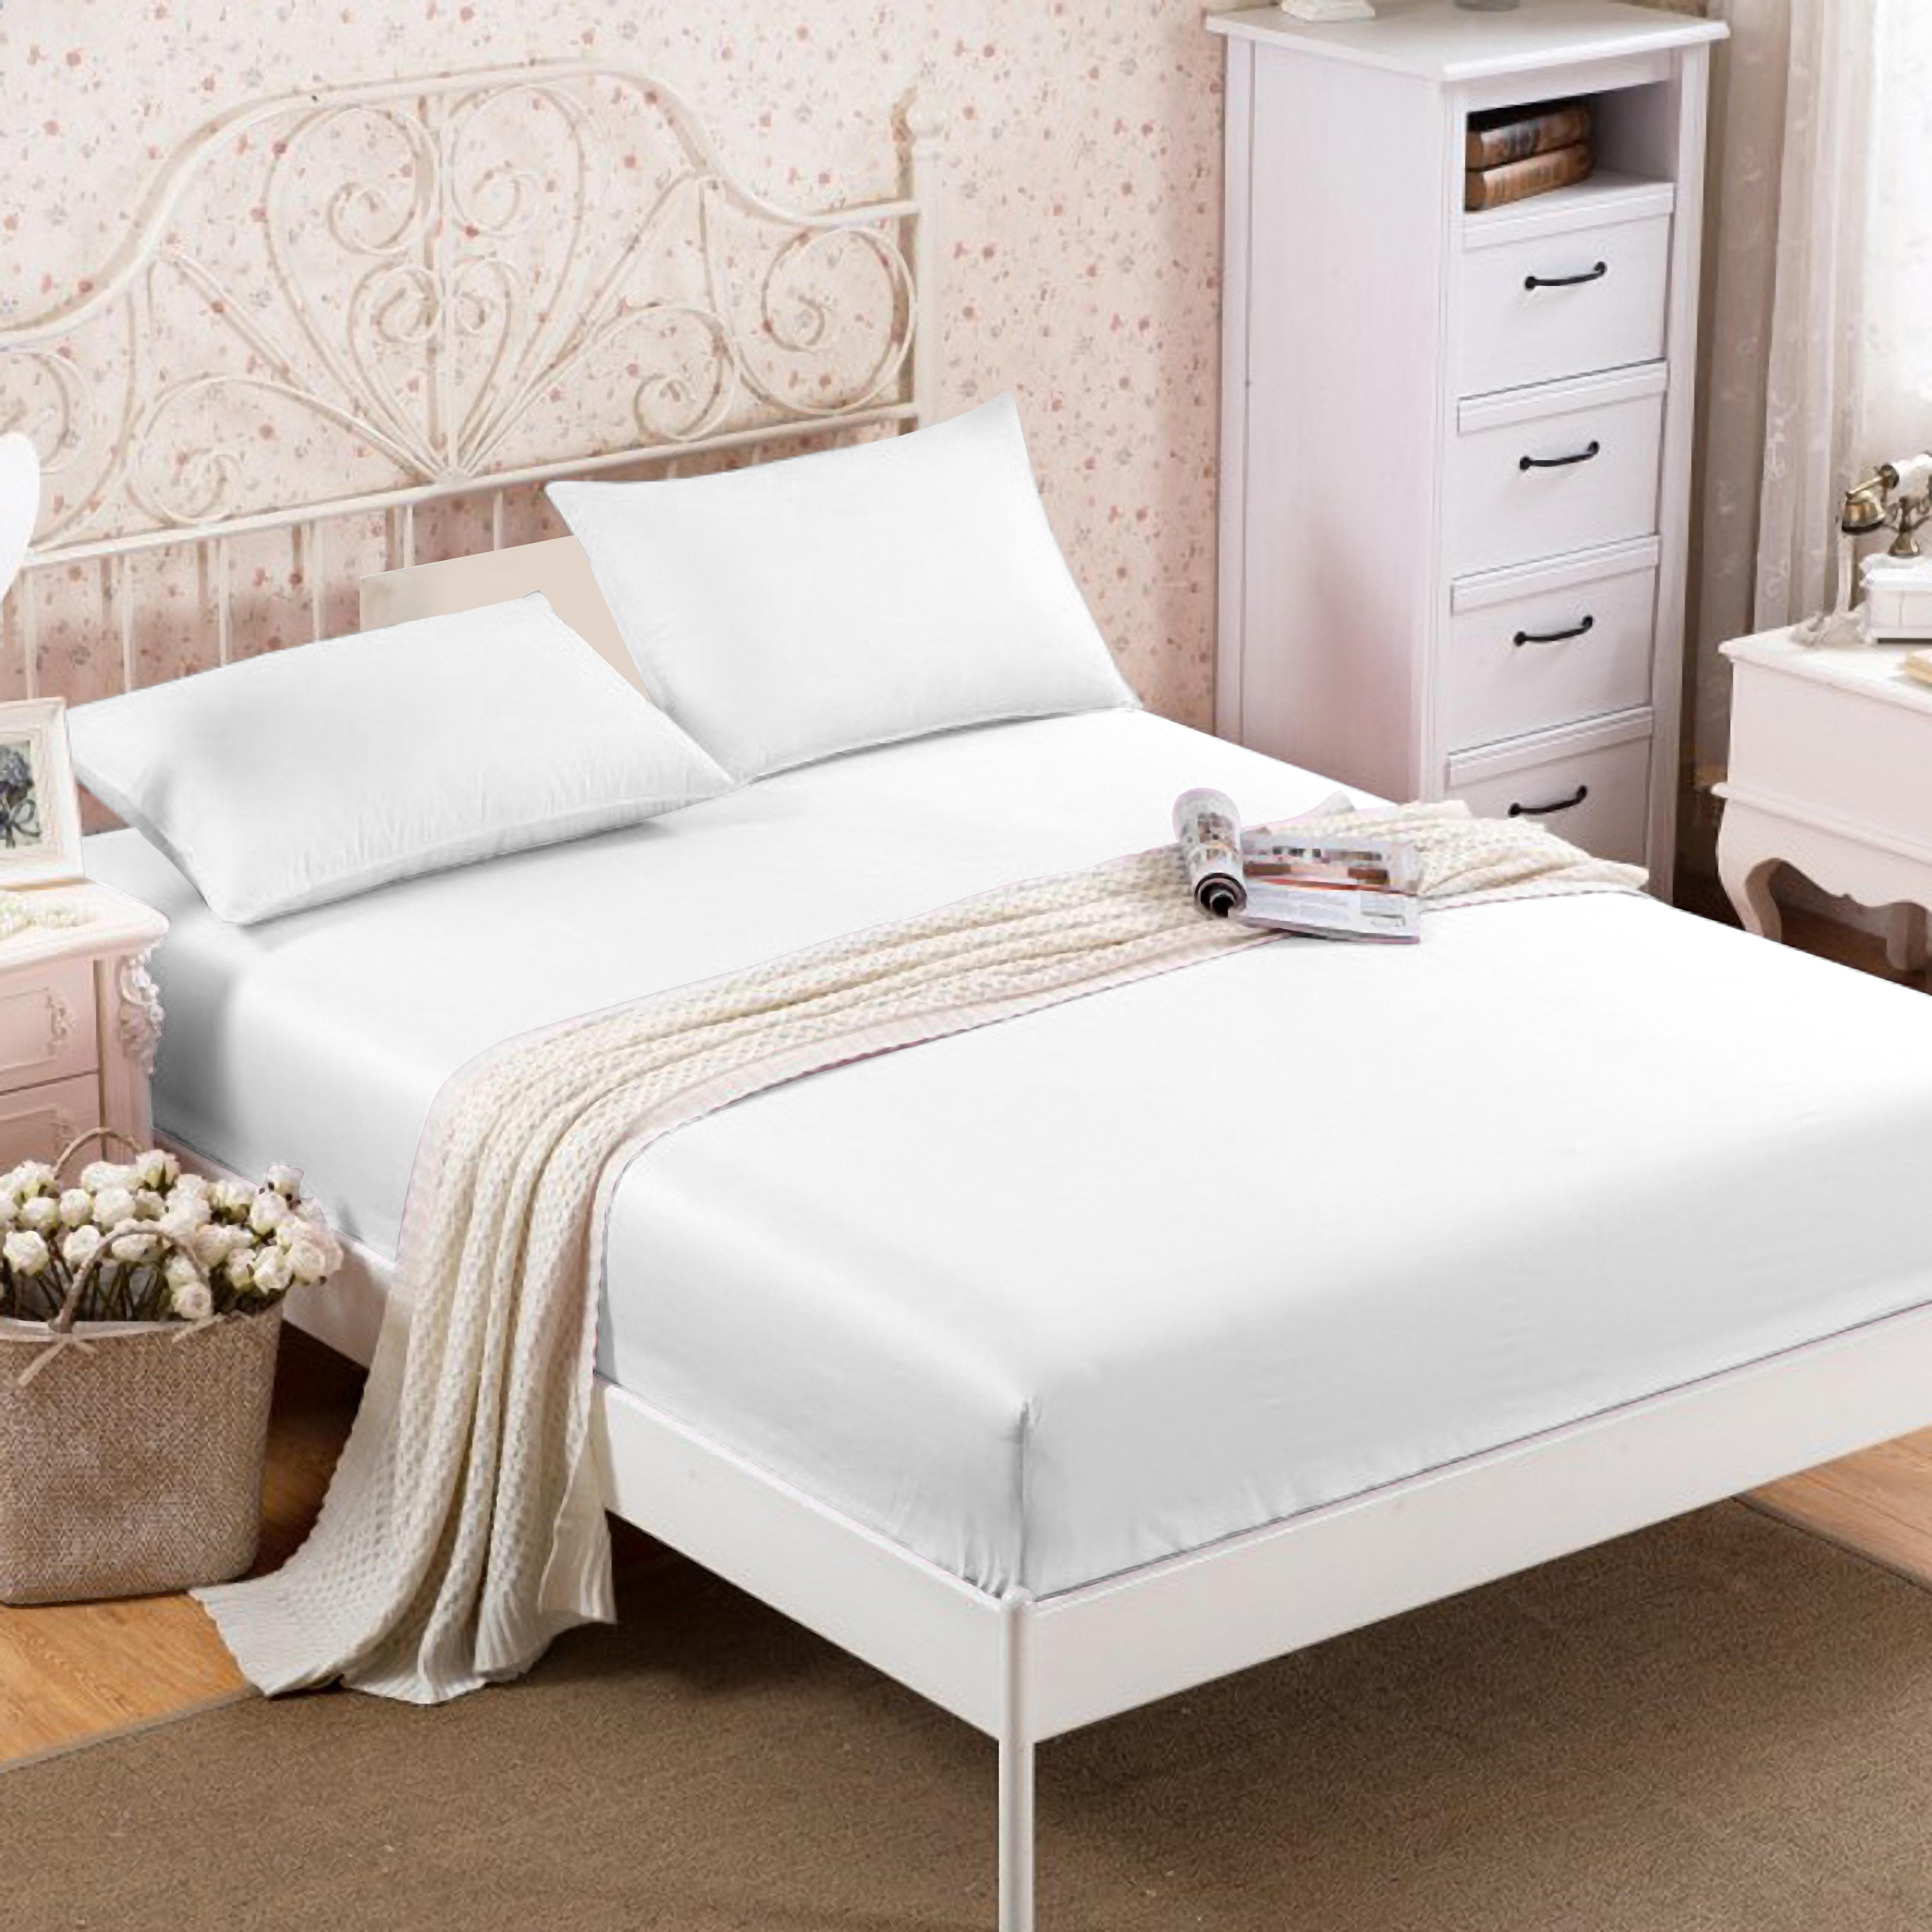 High Quality Comfortable Bed Sheets